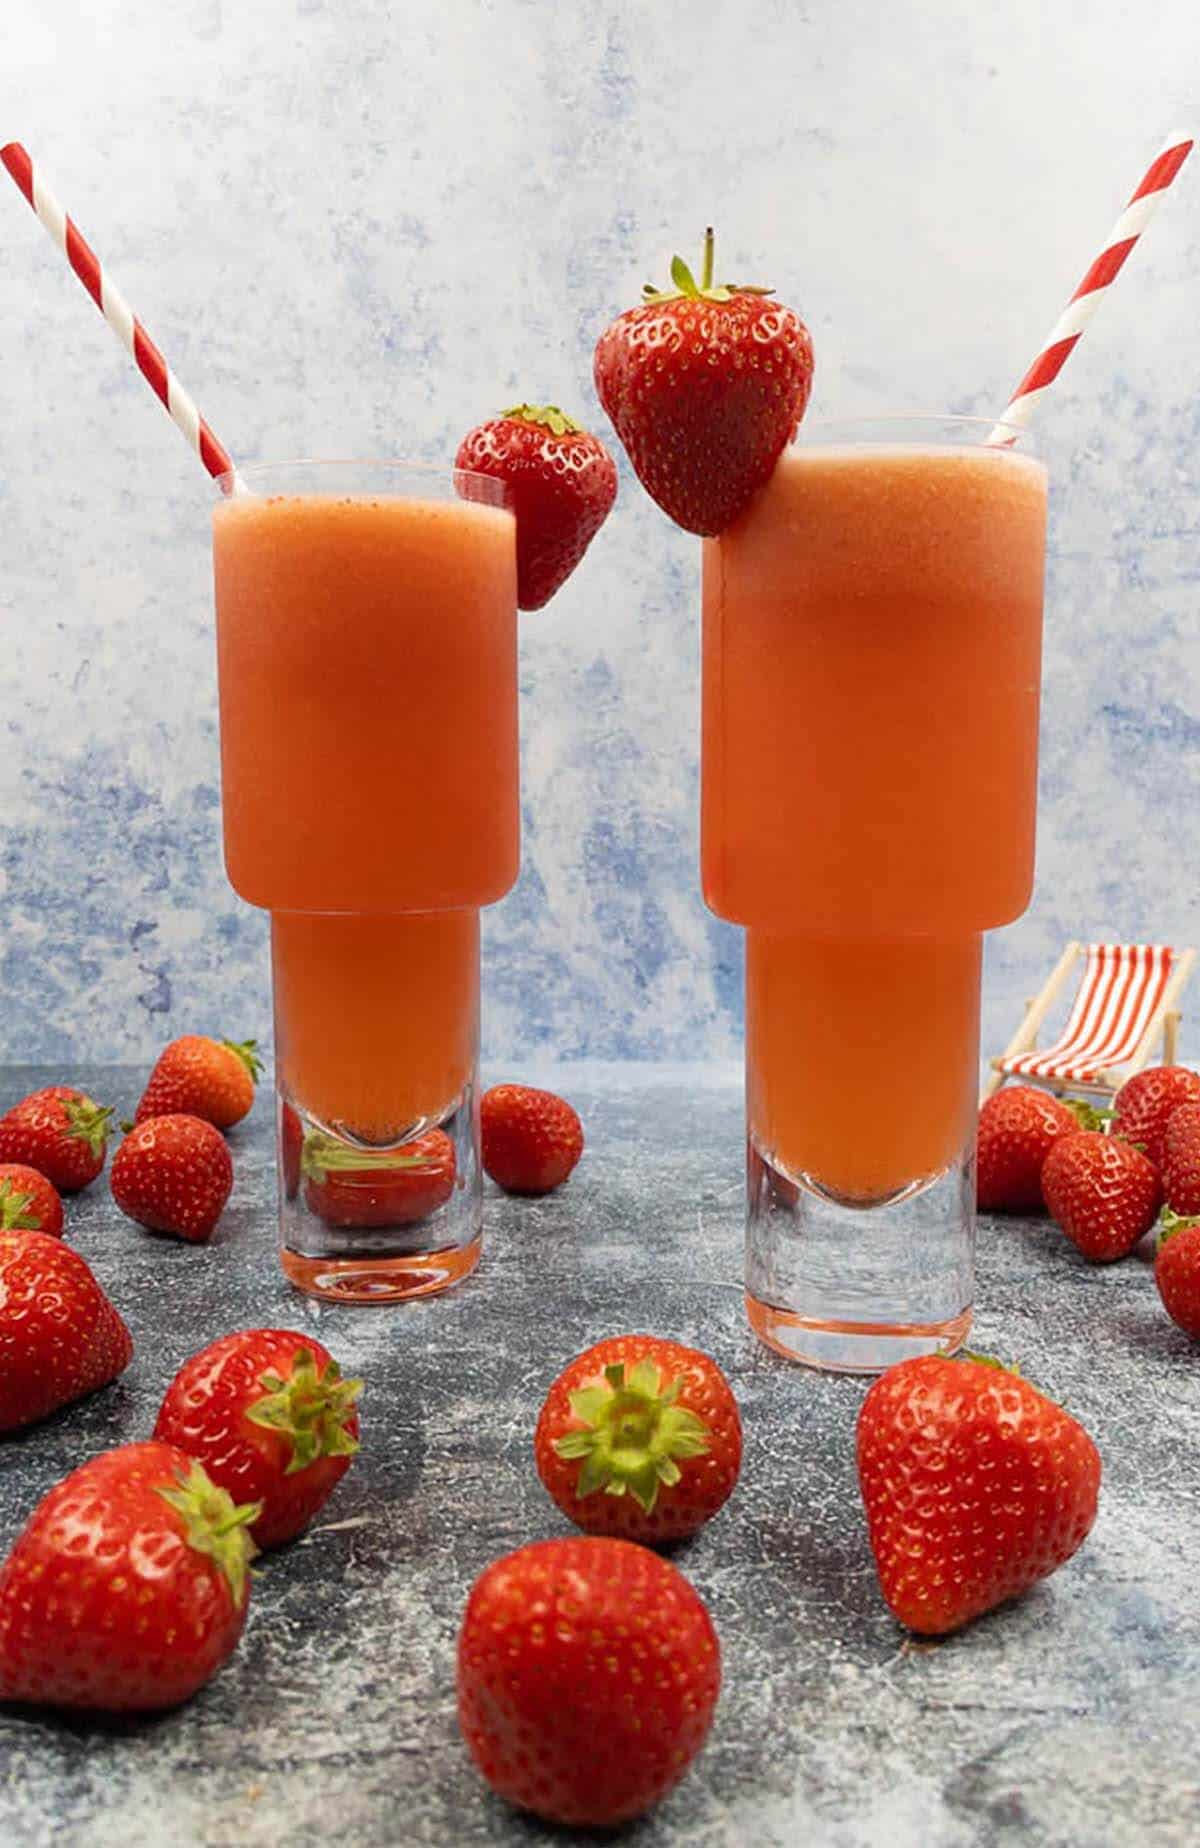 Two strawberry lemonade vodka cocktails with fresh strawberries, striped straws and a deck chair.